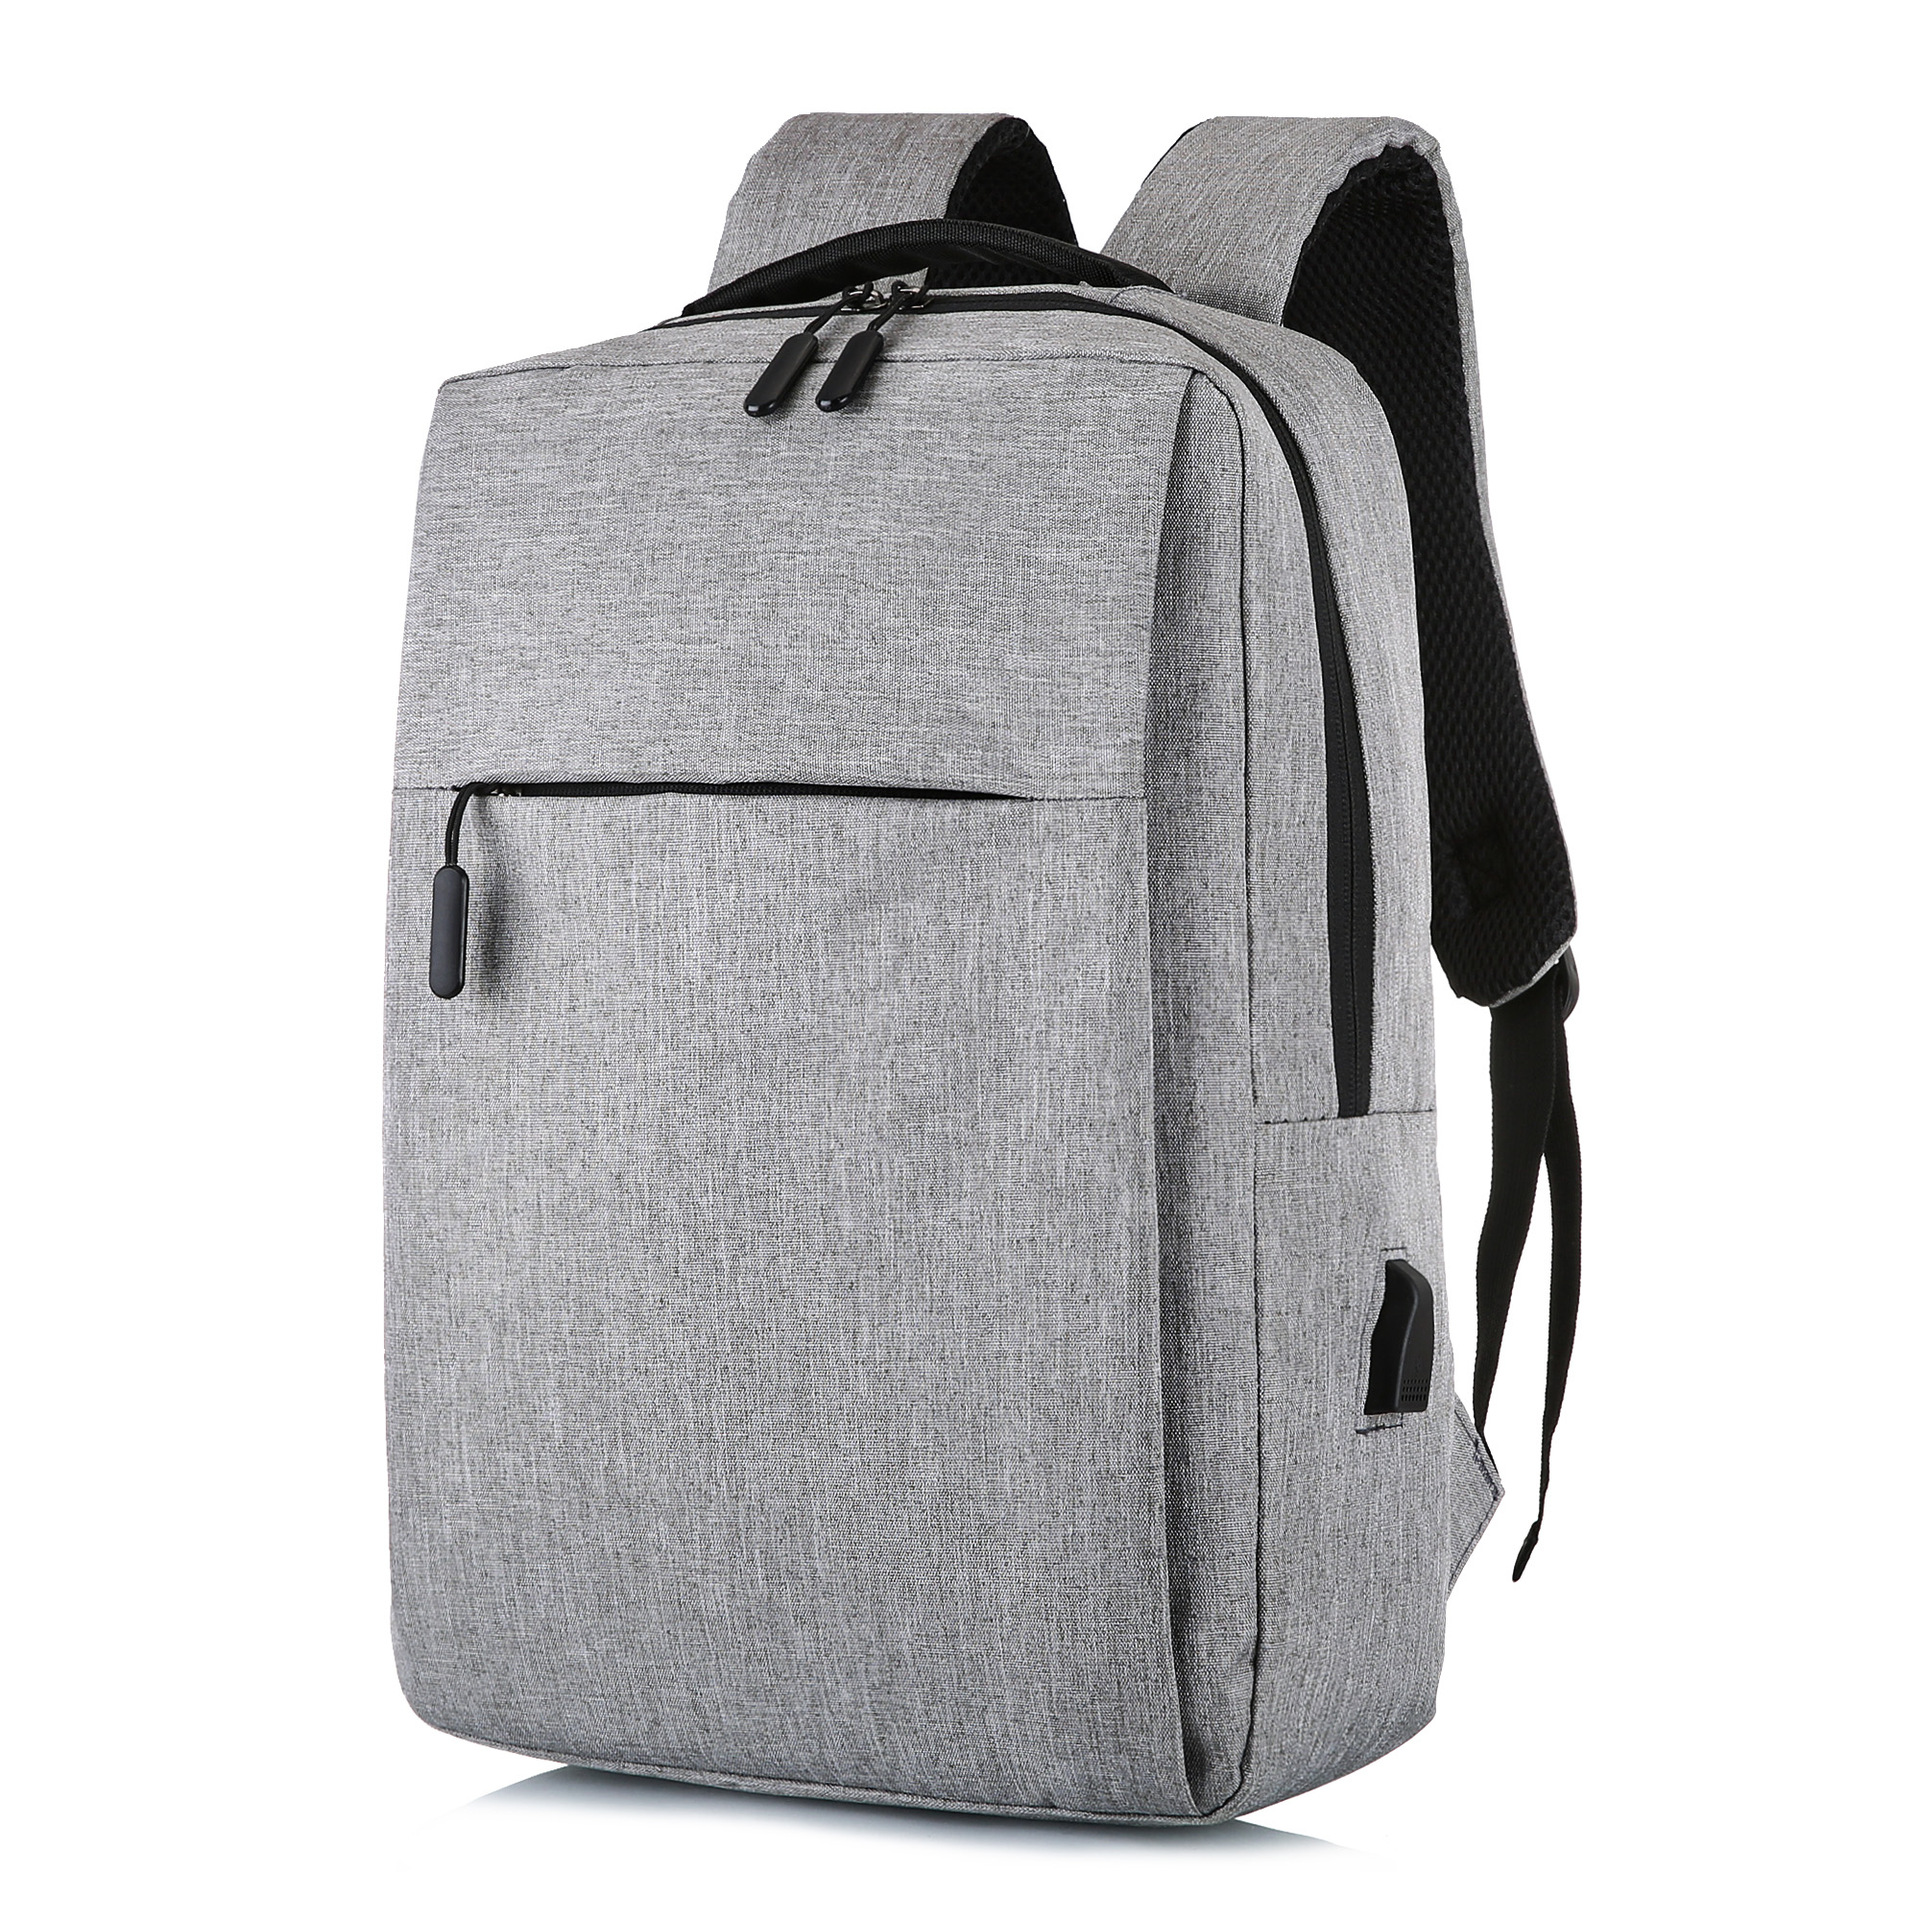 15.6 inches notebook Backpack laptop bag USB Travel Bag campus for hp dell apple laptop case macbook pro 15 air case matebook